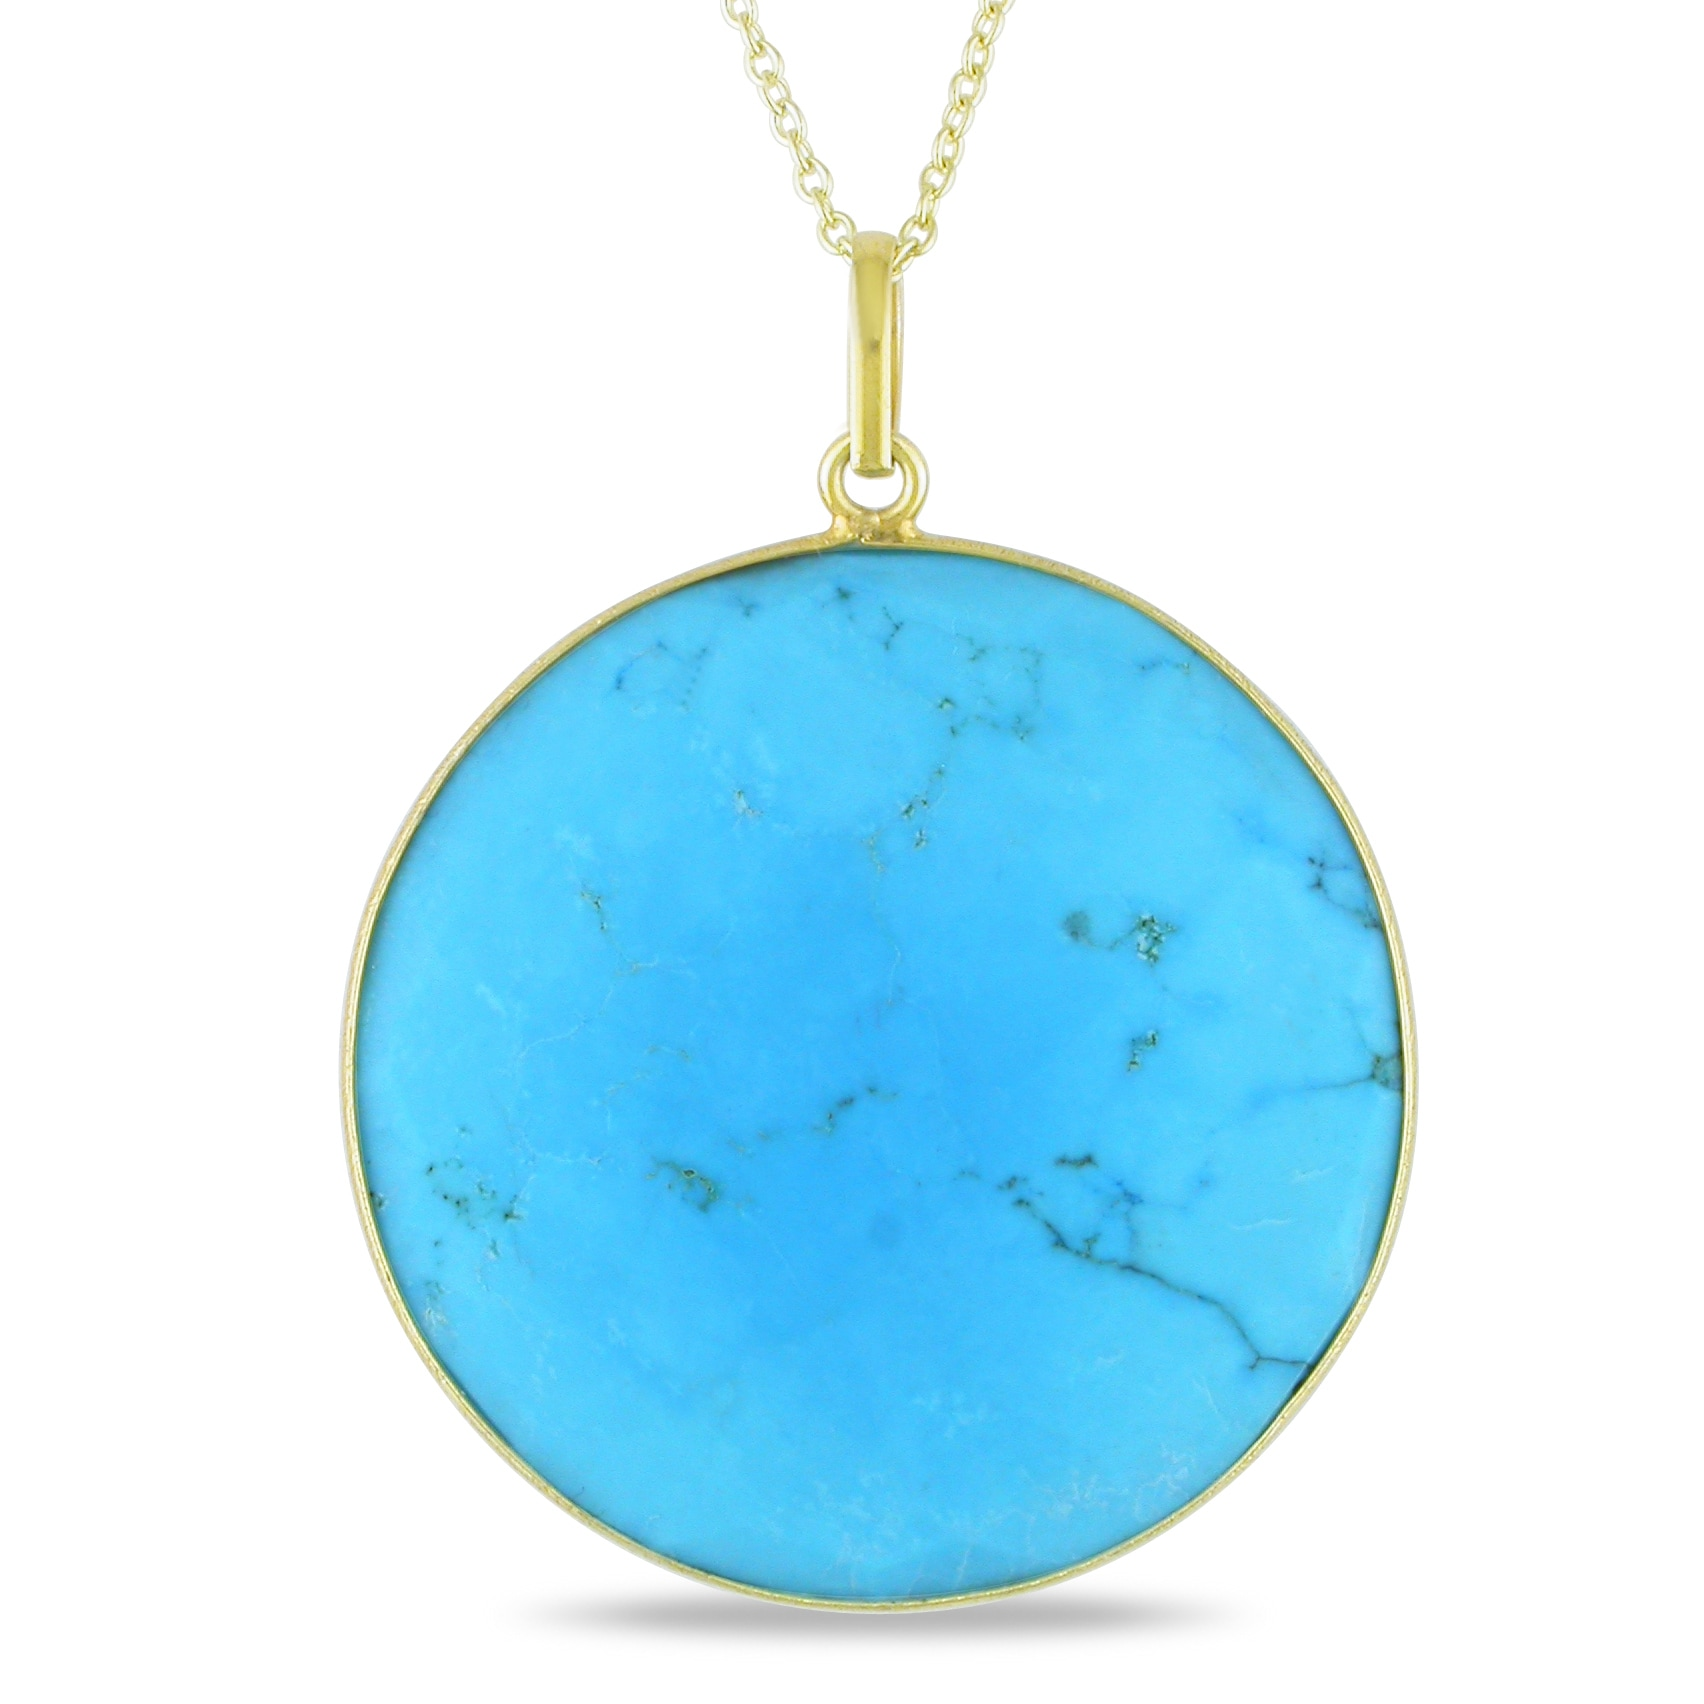 22k Gold Plated Silver Turquoise Necklace